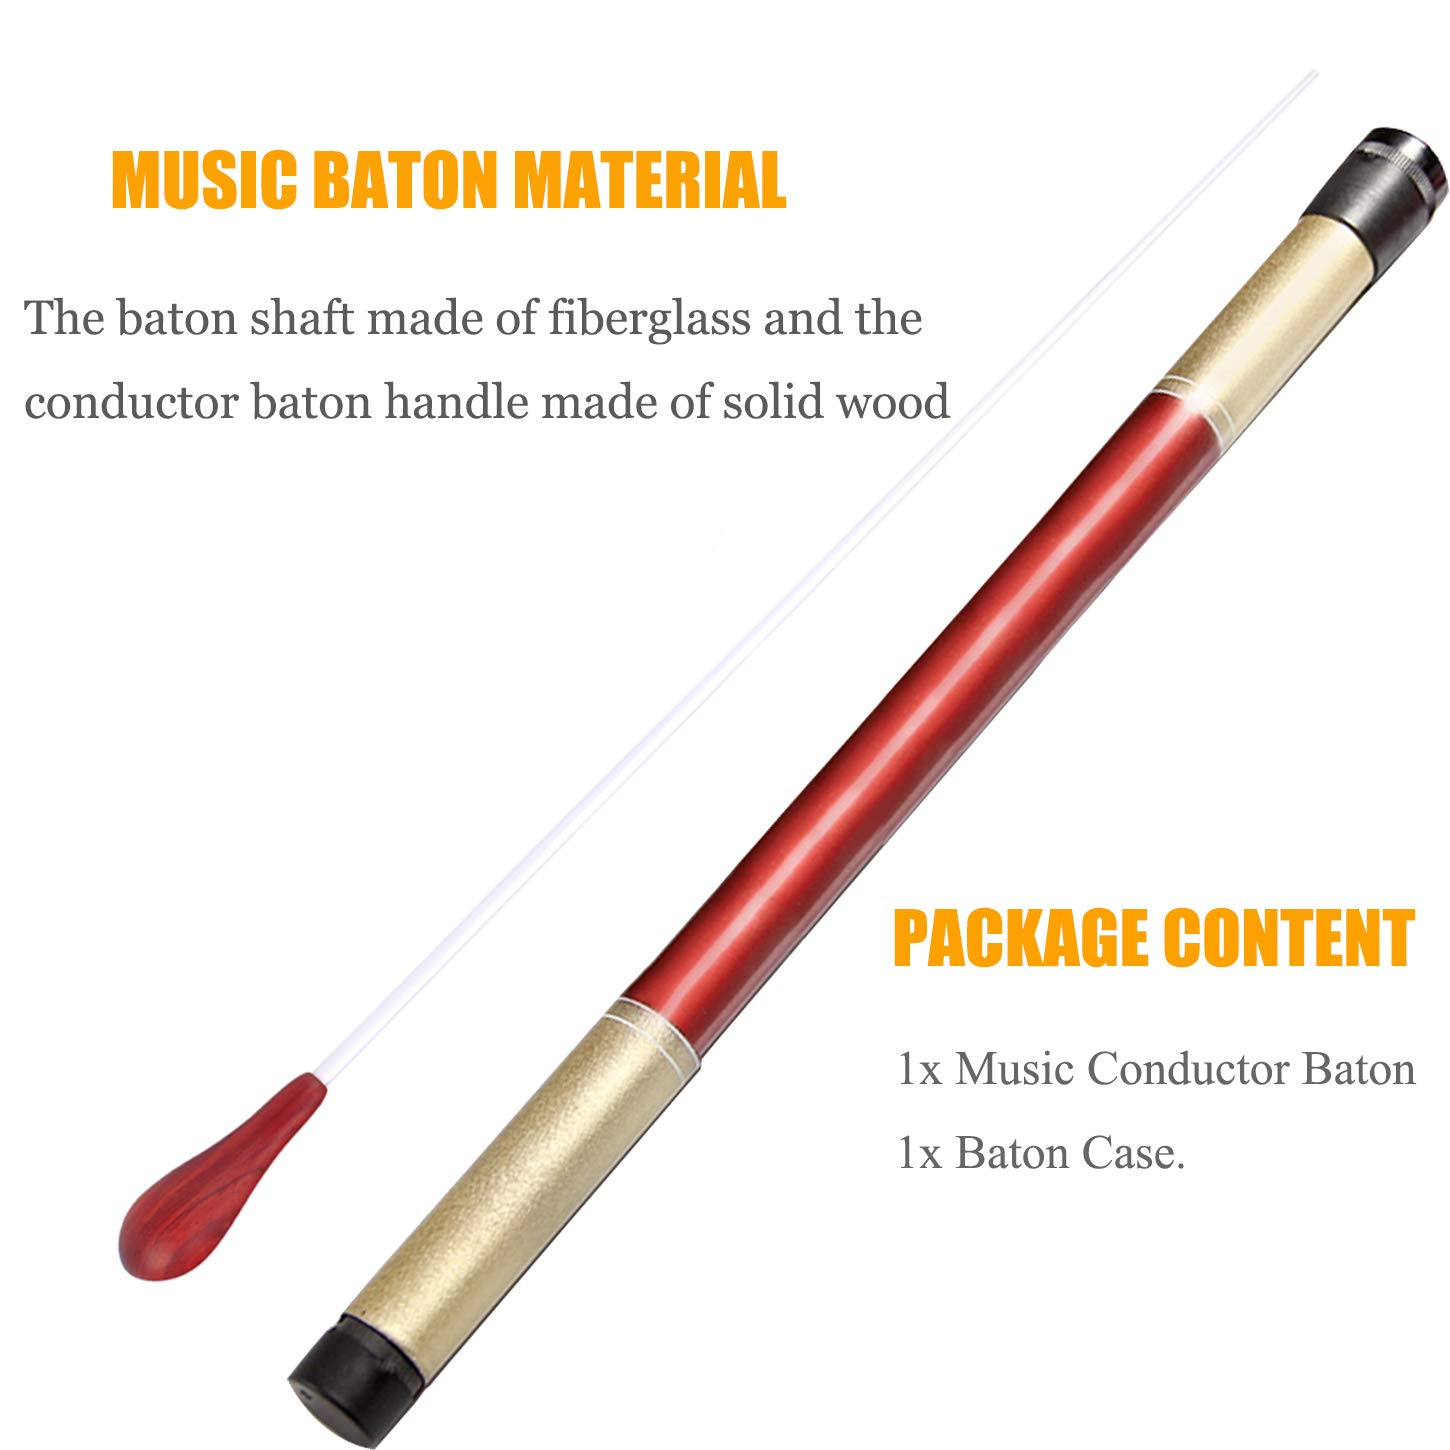 Special Summer Sale Alert Band Director Orchestra Conductor Baton And Wood Case Musical Instruments & Gear Equipment